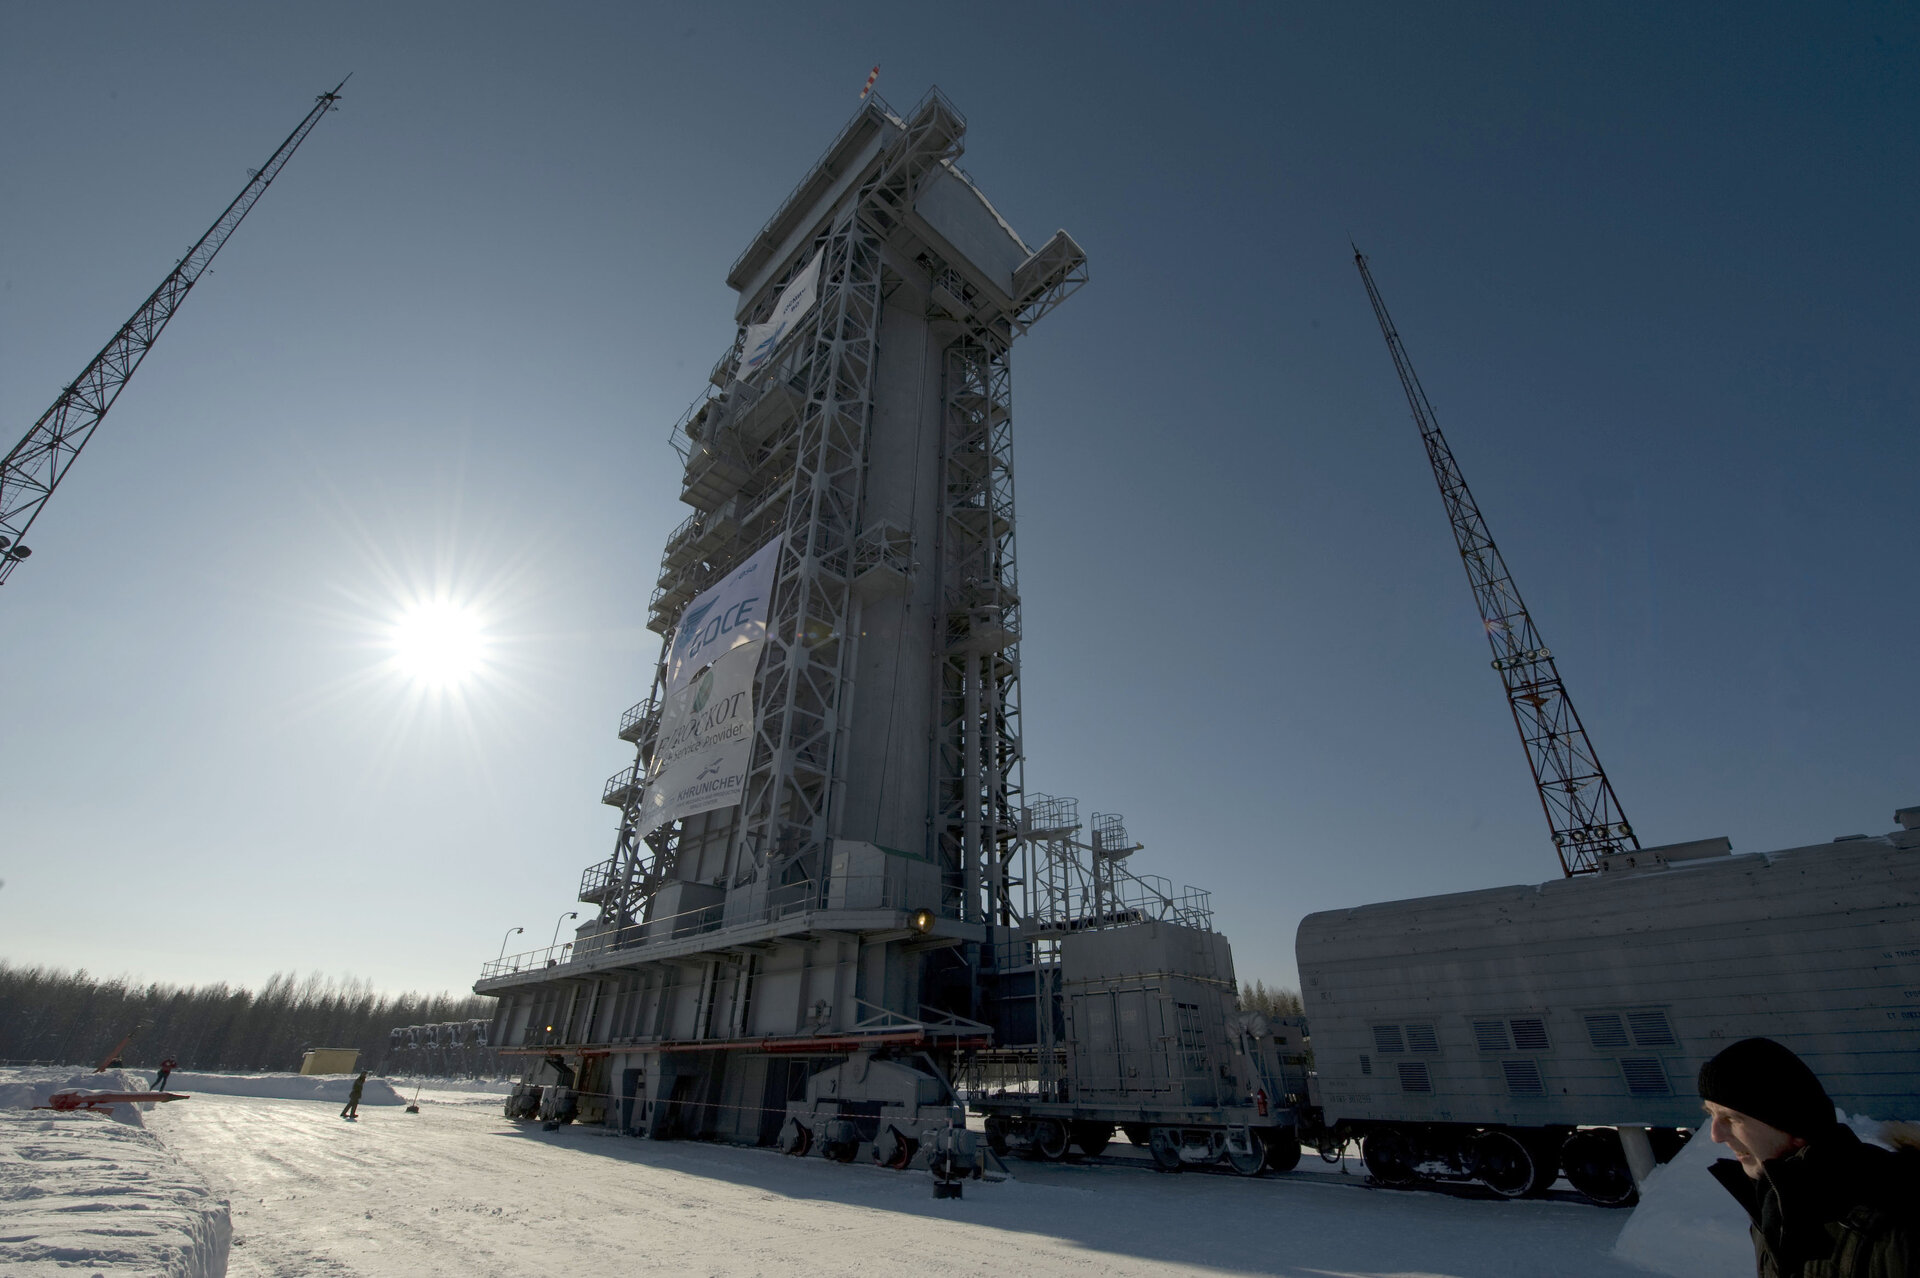 GOCE in the launch tower